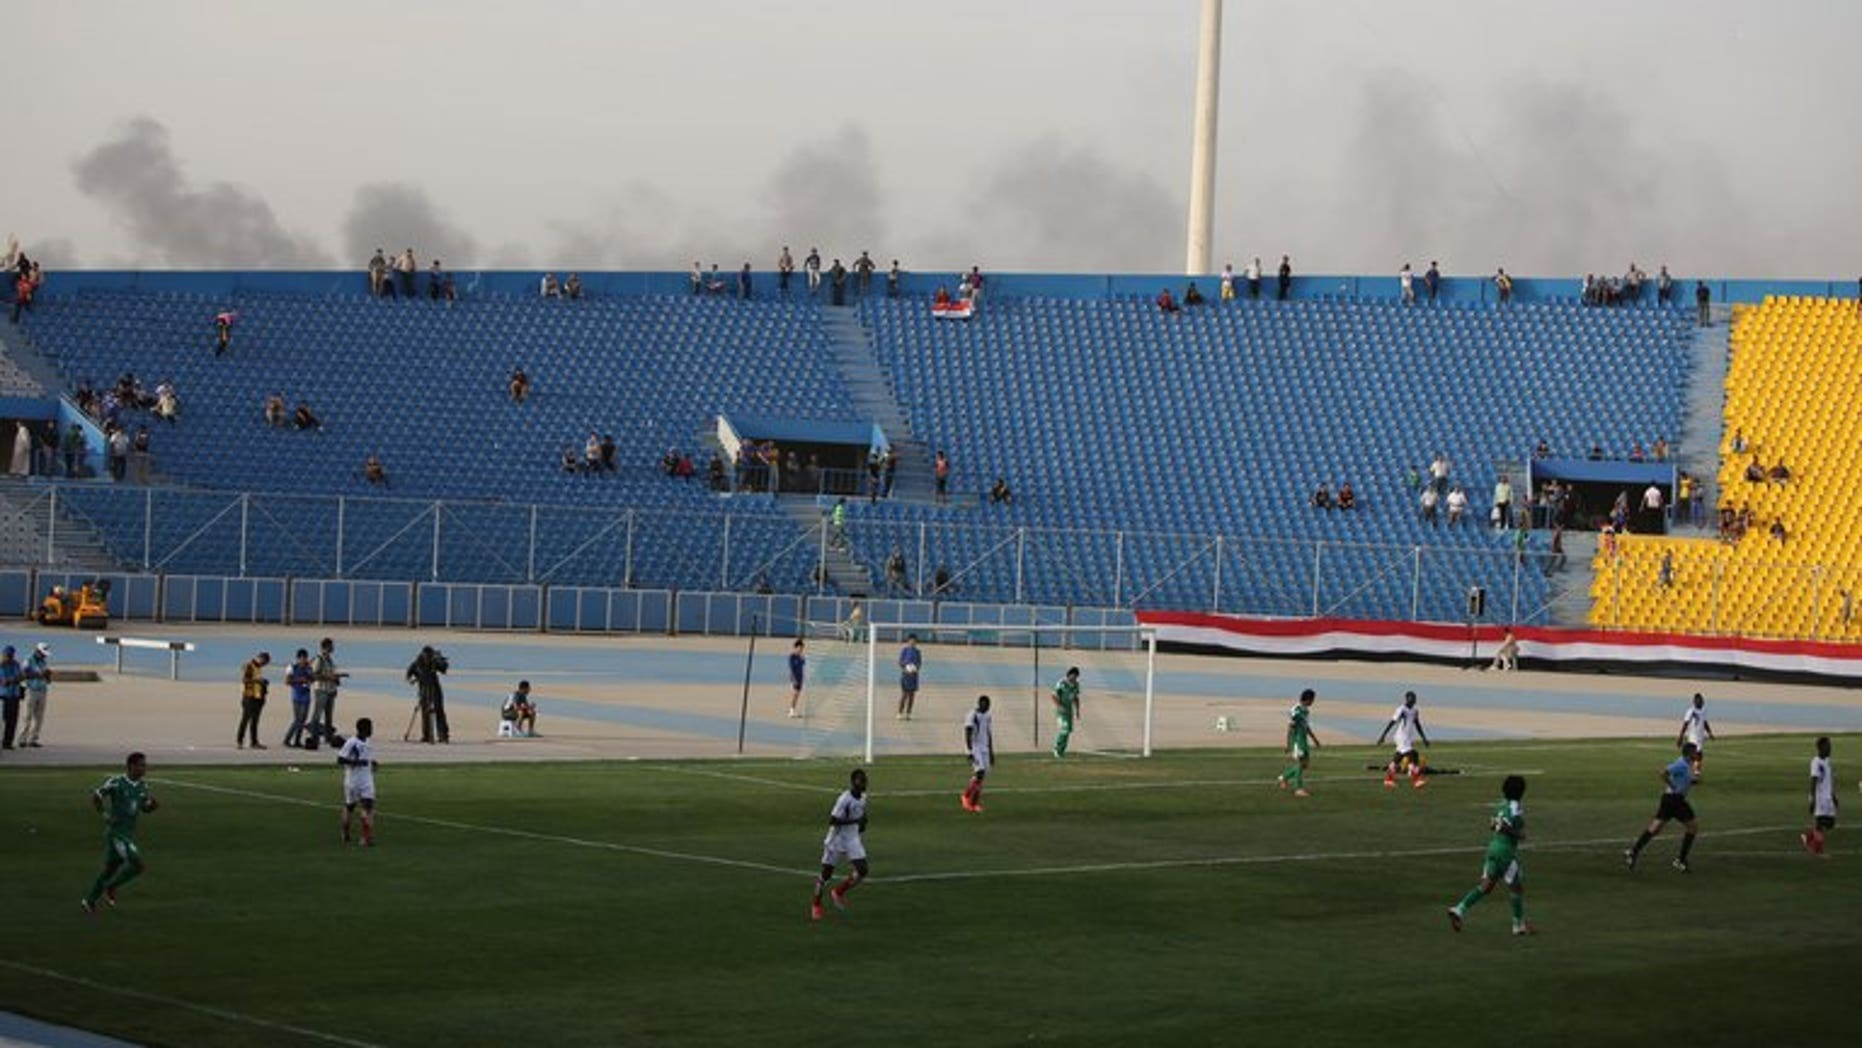 Smoke from explosions billow on the background as Iraq plays a friendly match against Liberia at al-Shaab Stadium in Baghdad on May 27, 2013. FIFA on Wednesday barred Iraq from hosting international football friendlies due to a massive surge in nationwide violence, barely three months after world football's governing body gave Baghdad the go-ahead.